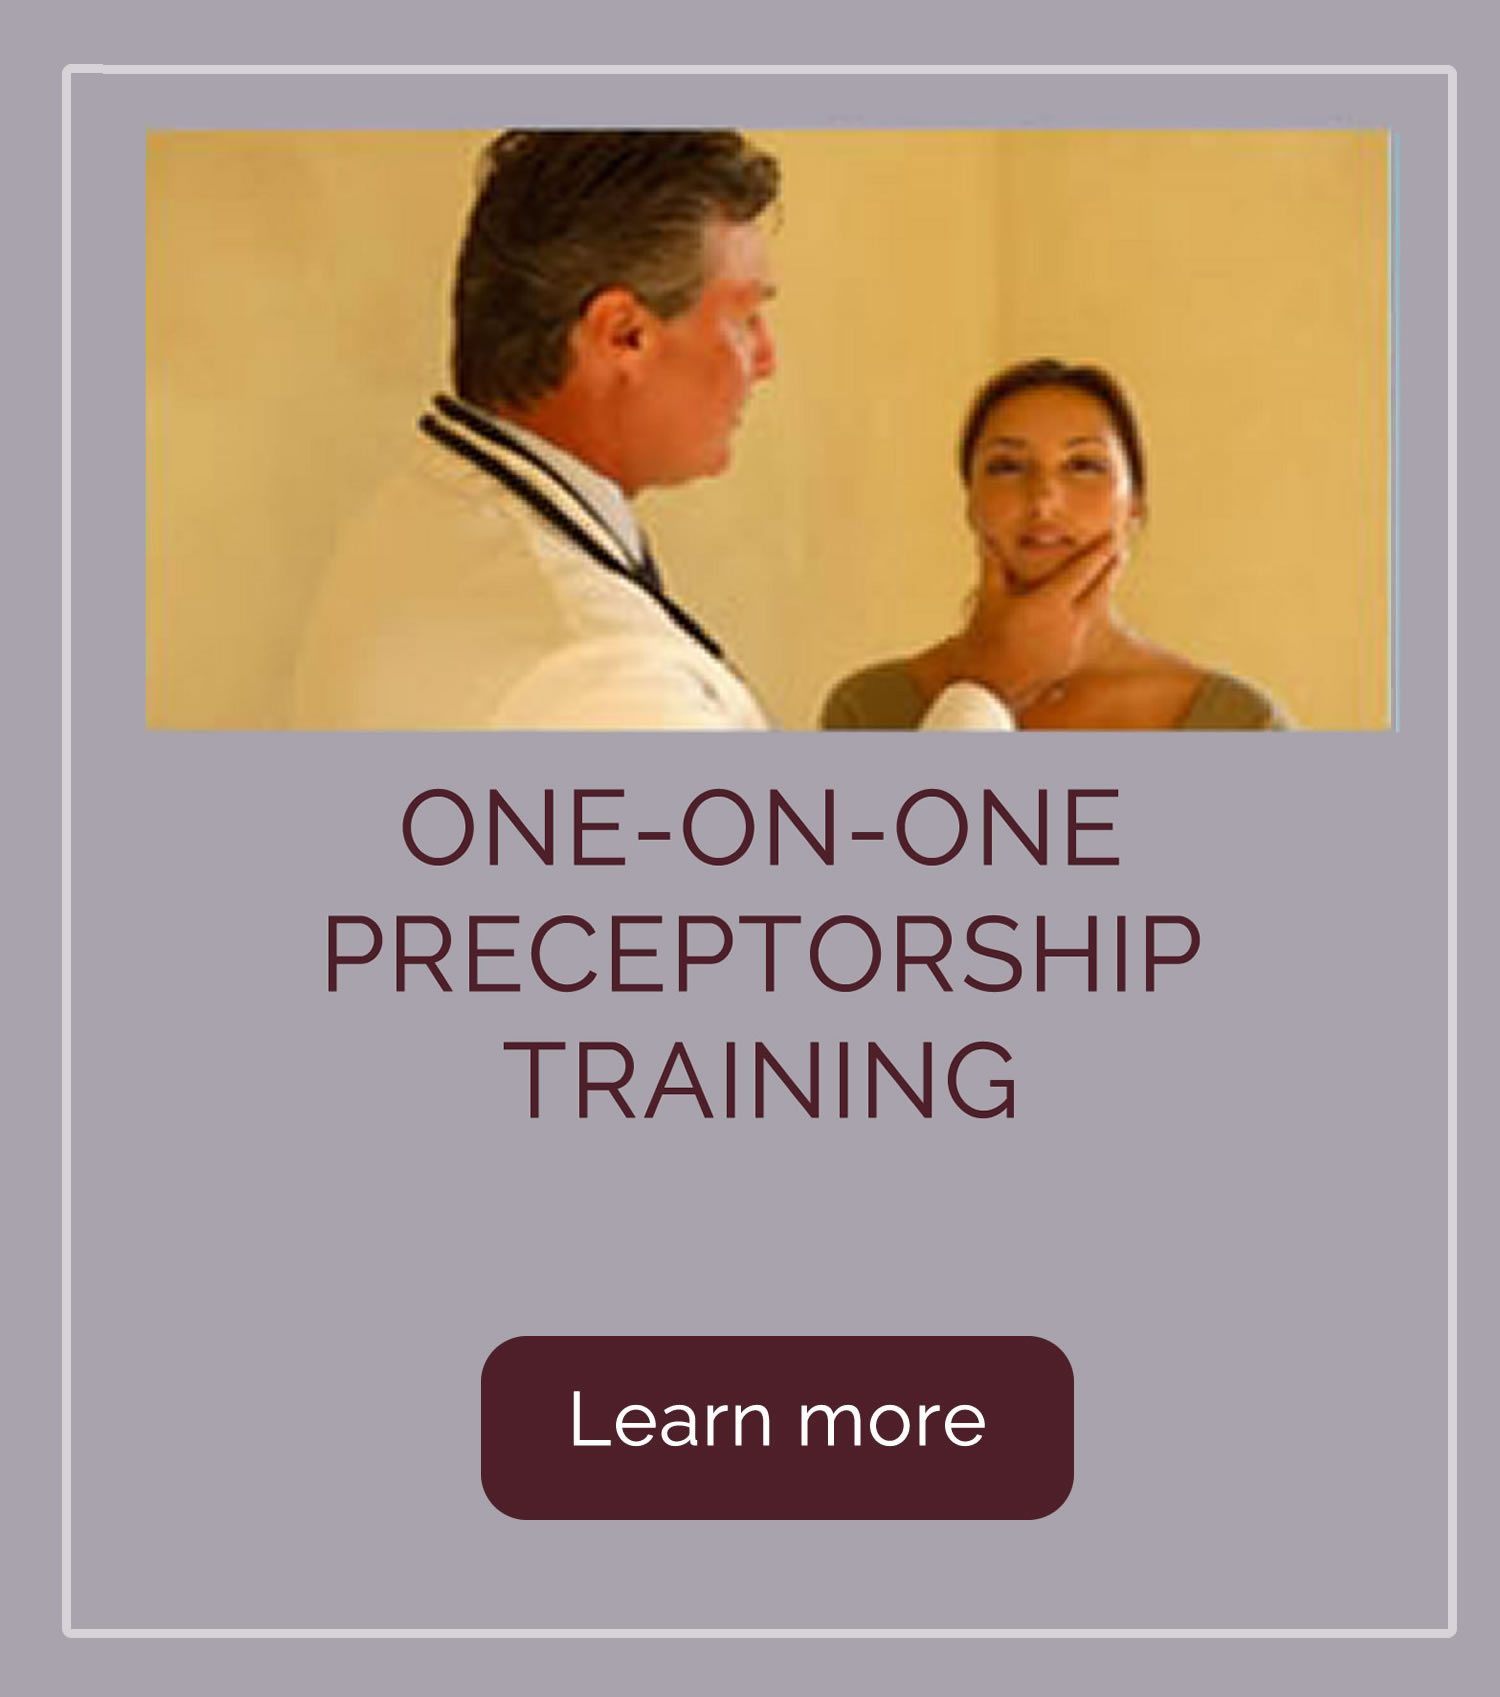 One-on-One Preceptorship Training